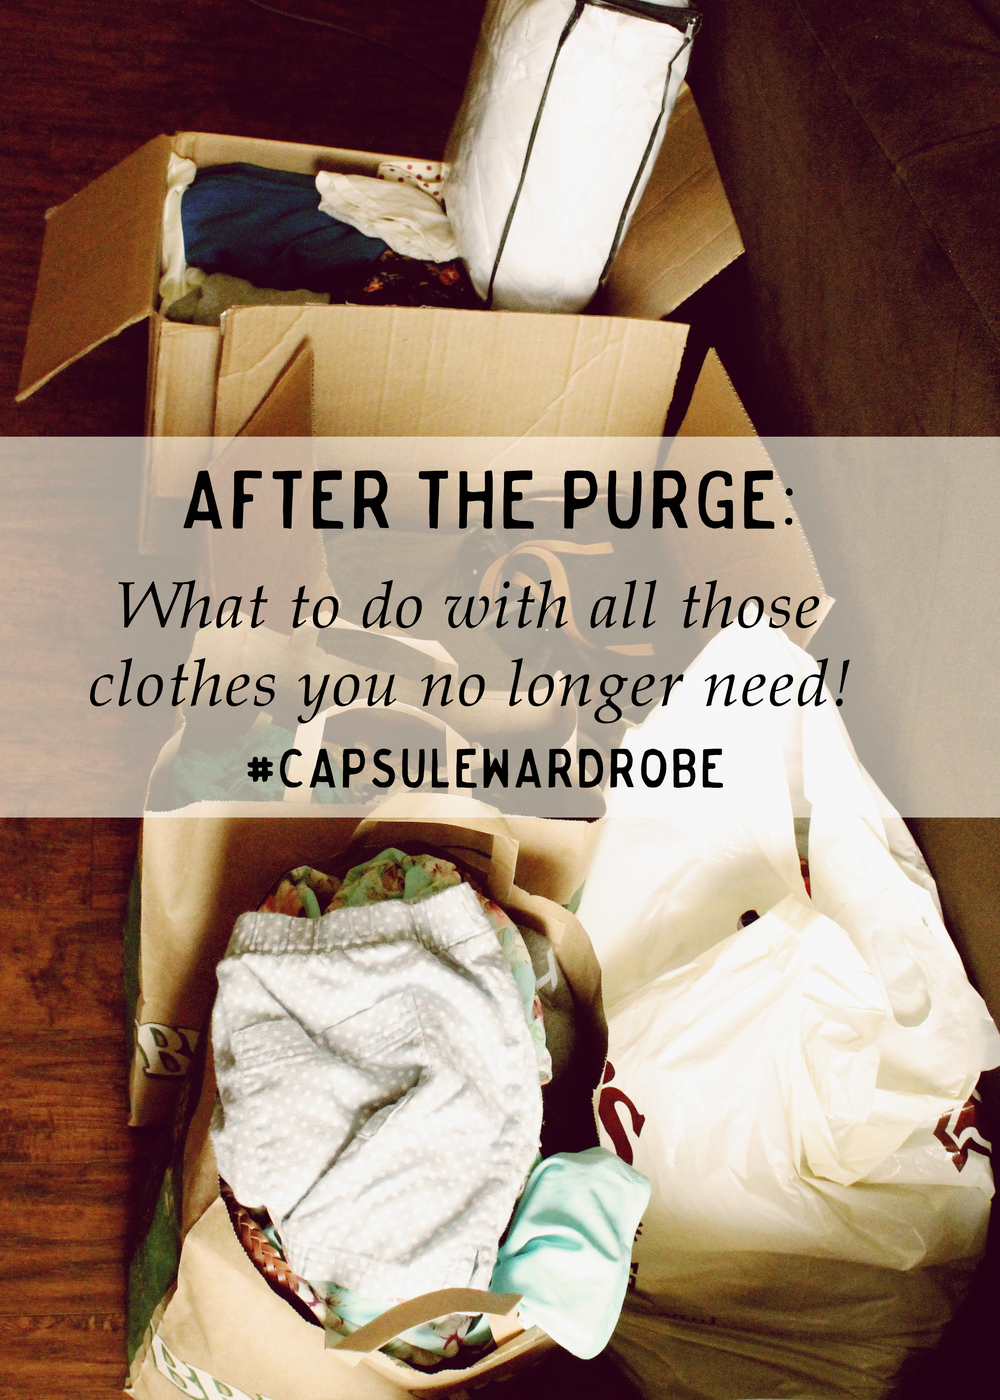 After the Purge: What to do with all those clothes you no longer need now that you have a capsule wardrobe!